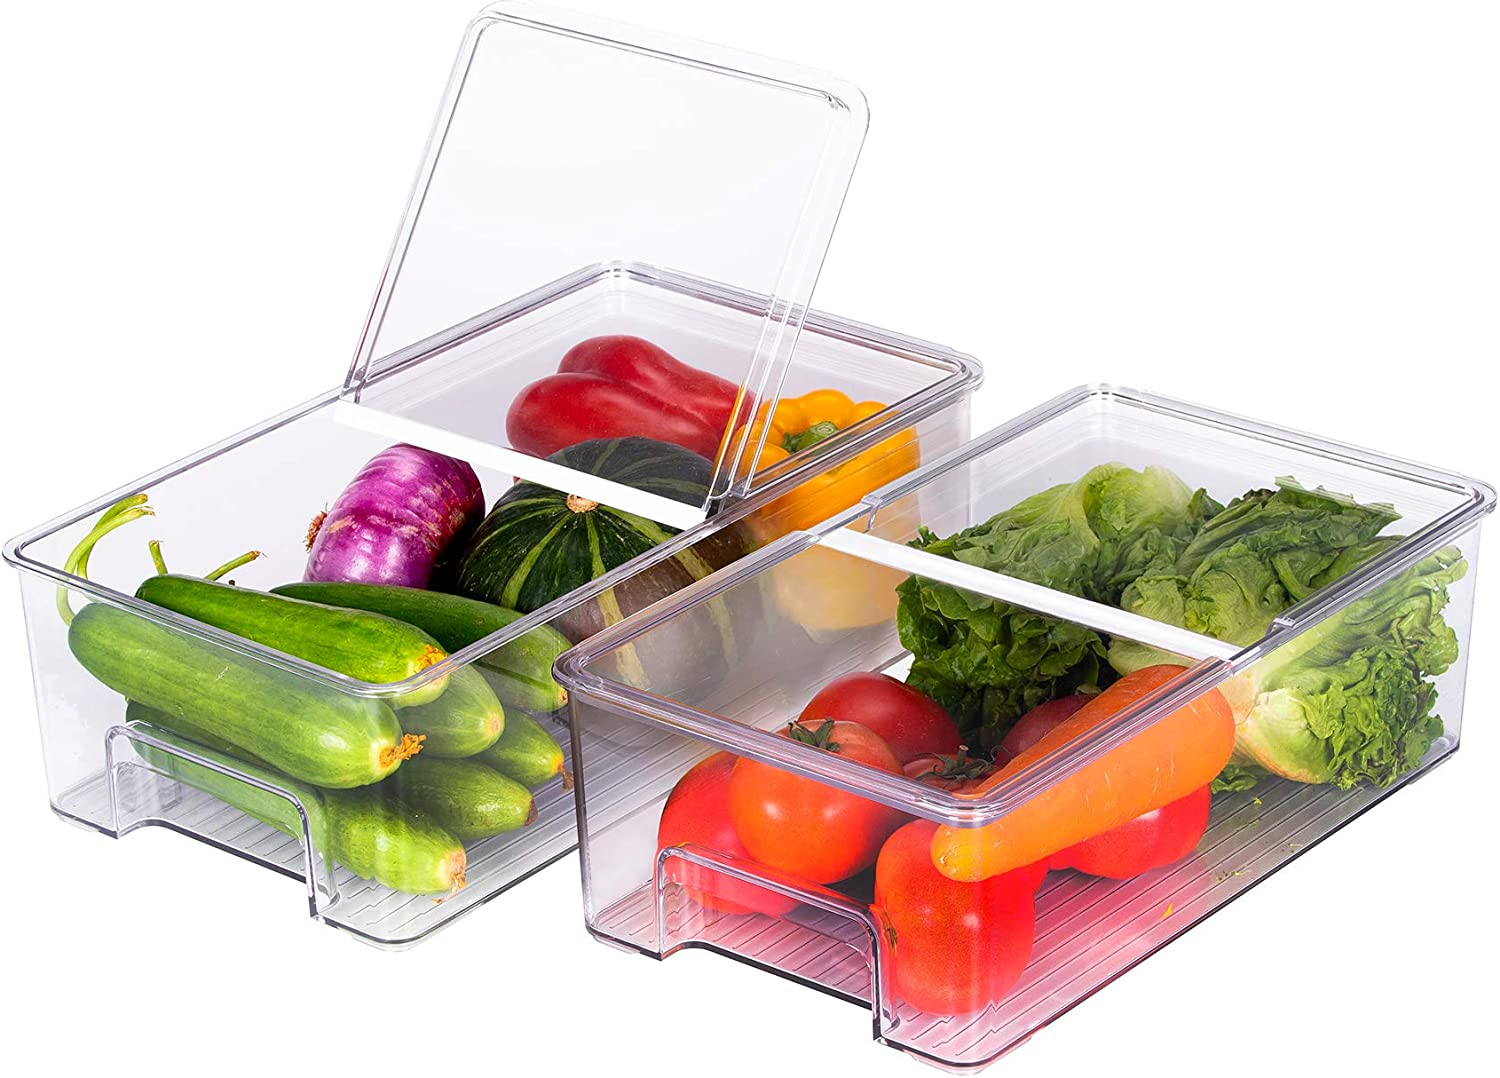 REFSAVER Refrigerator Food Storage Container Bin 2 Pack Fridge Trays with Foldable Lid Kitchen Organizer Produce Bin for Vegetables,Fruits,Snacks